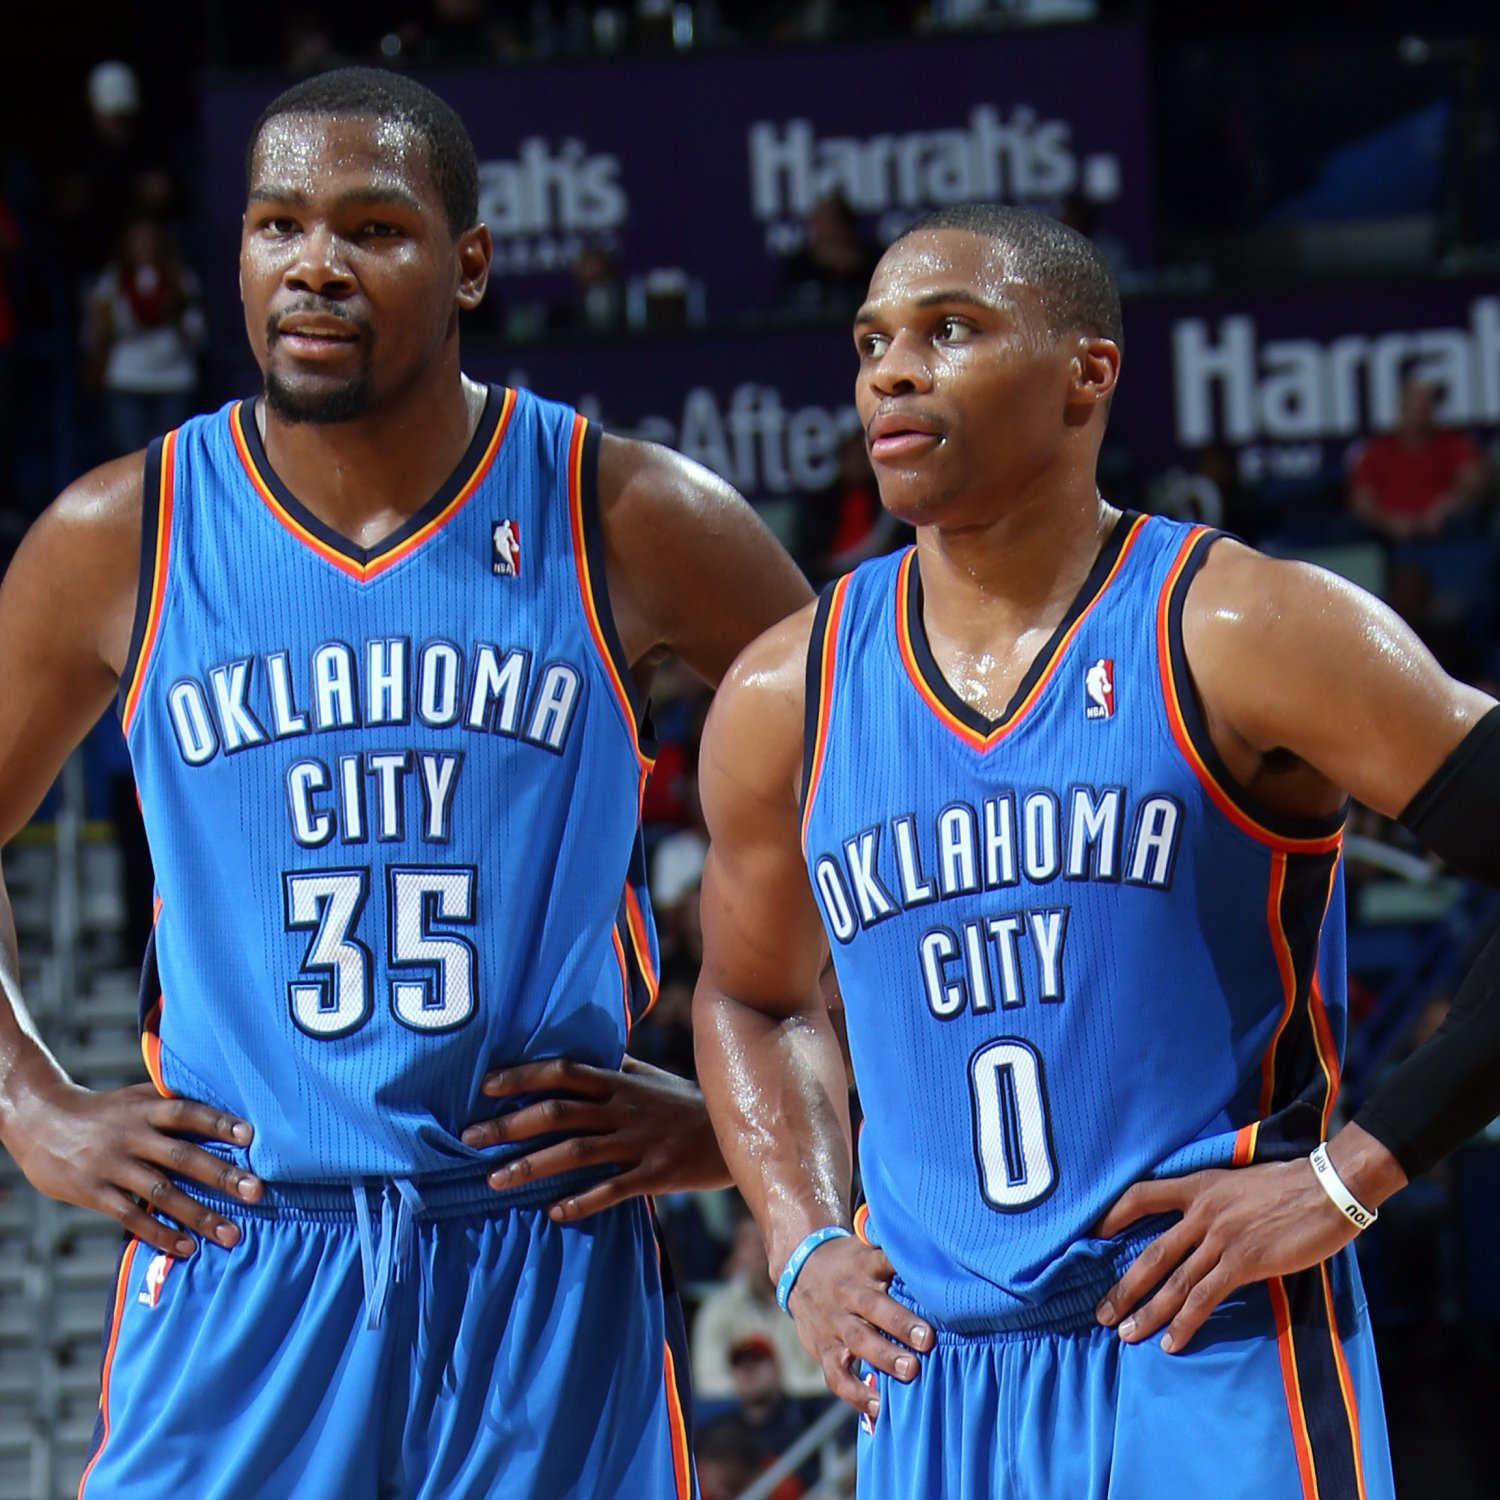 http://img.bleacherreport.net/img/images/photos/002/677/247/hi-res-454036275-kevin-durant-and-russell-westbrook-of-the-oklahoma-city_crop_exact.jpg?w=1500&h=1500&q=85